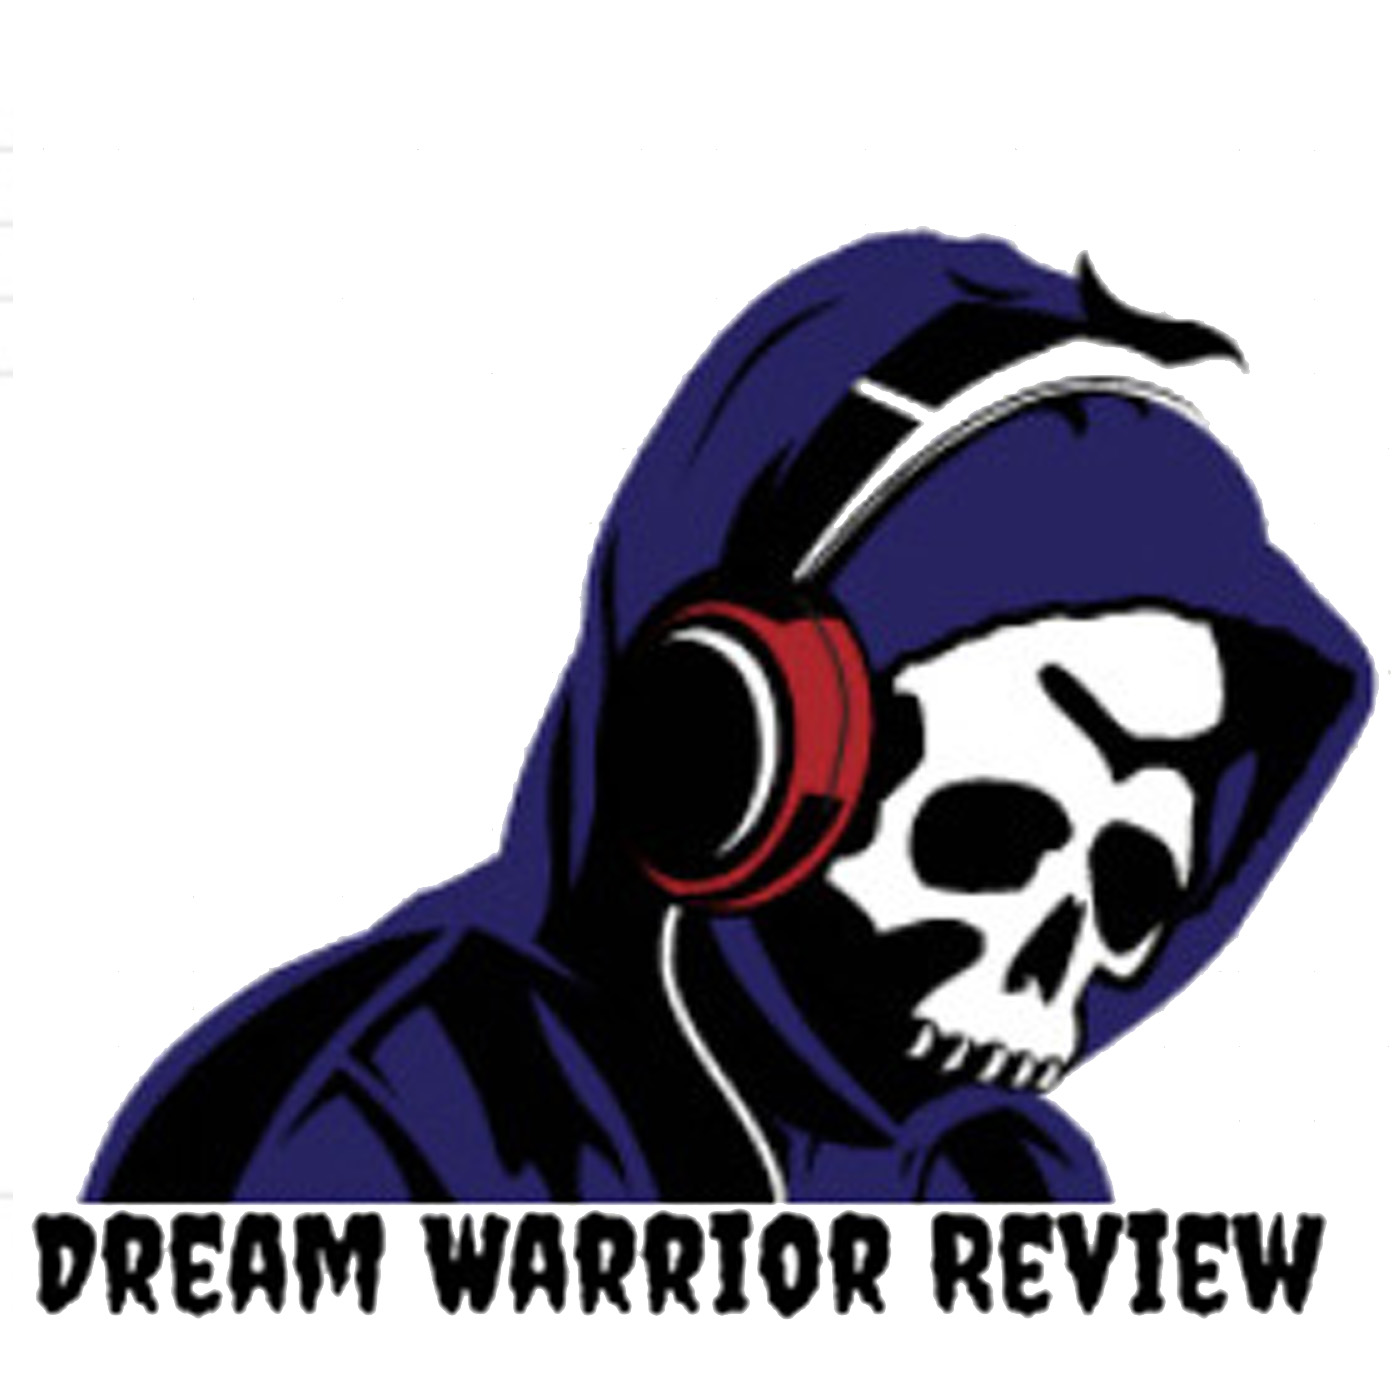 Dream Warrior Review with Miq Strawn and Kurt Thomas